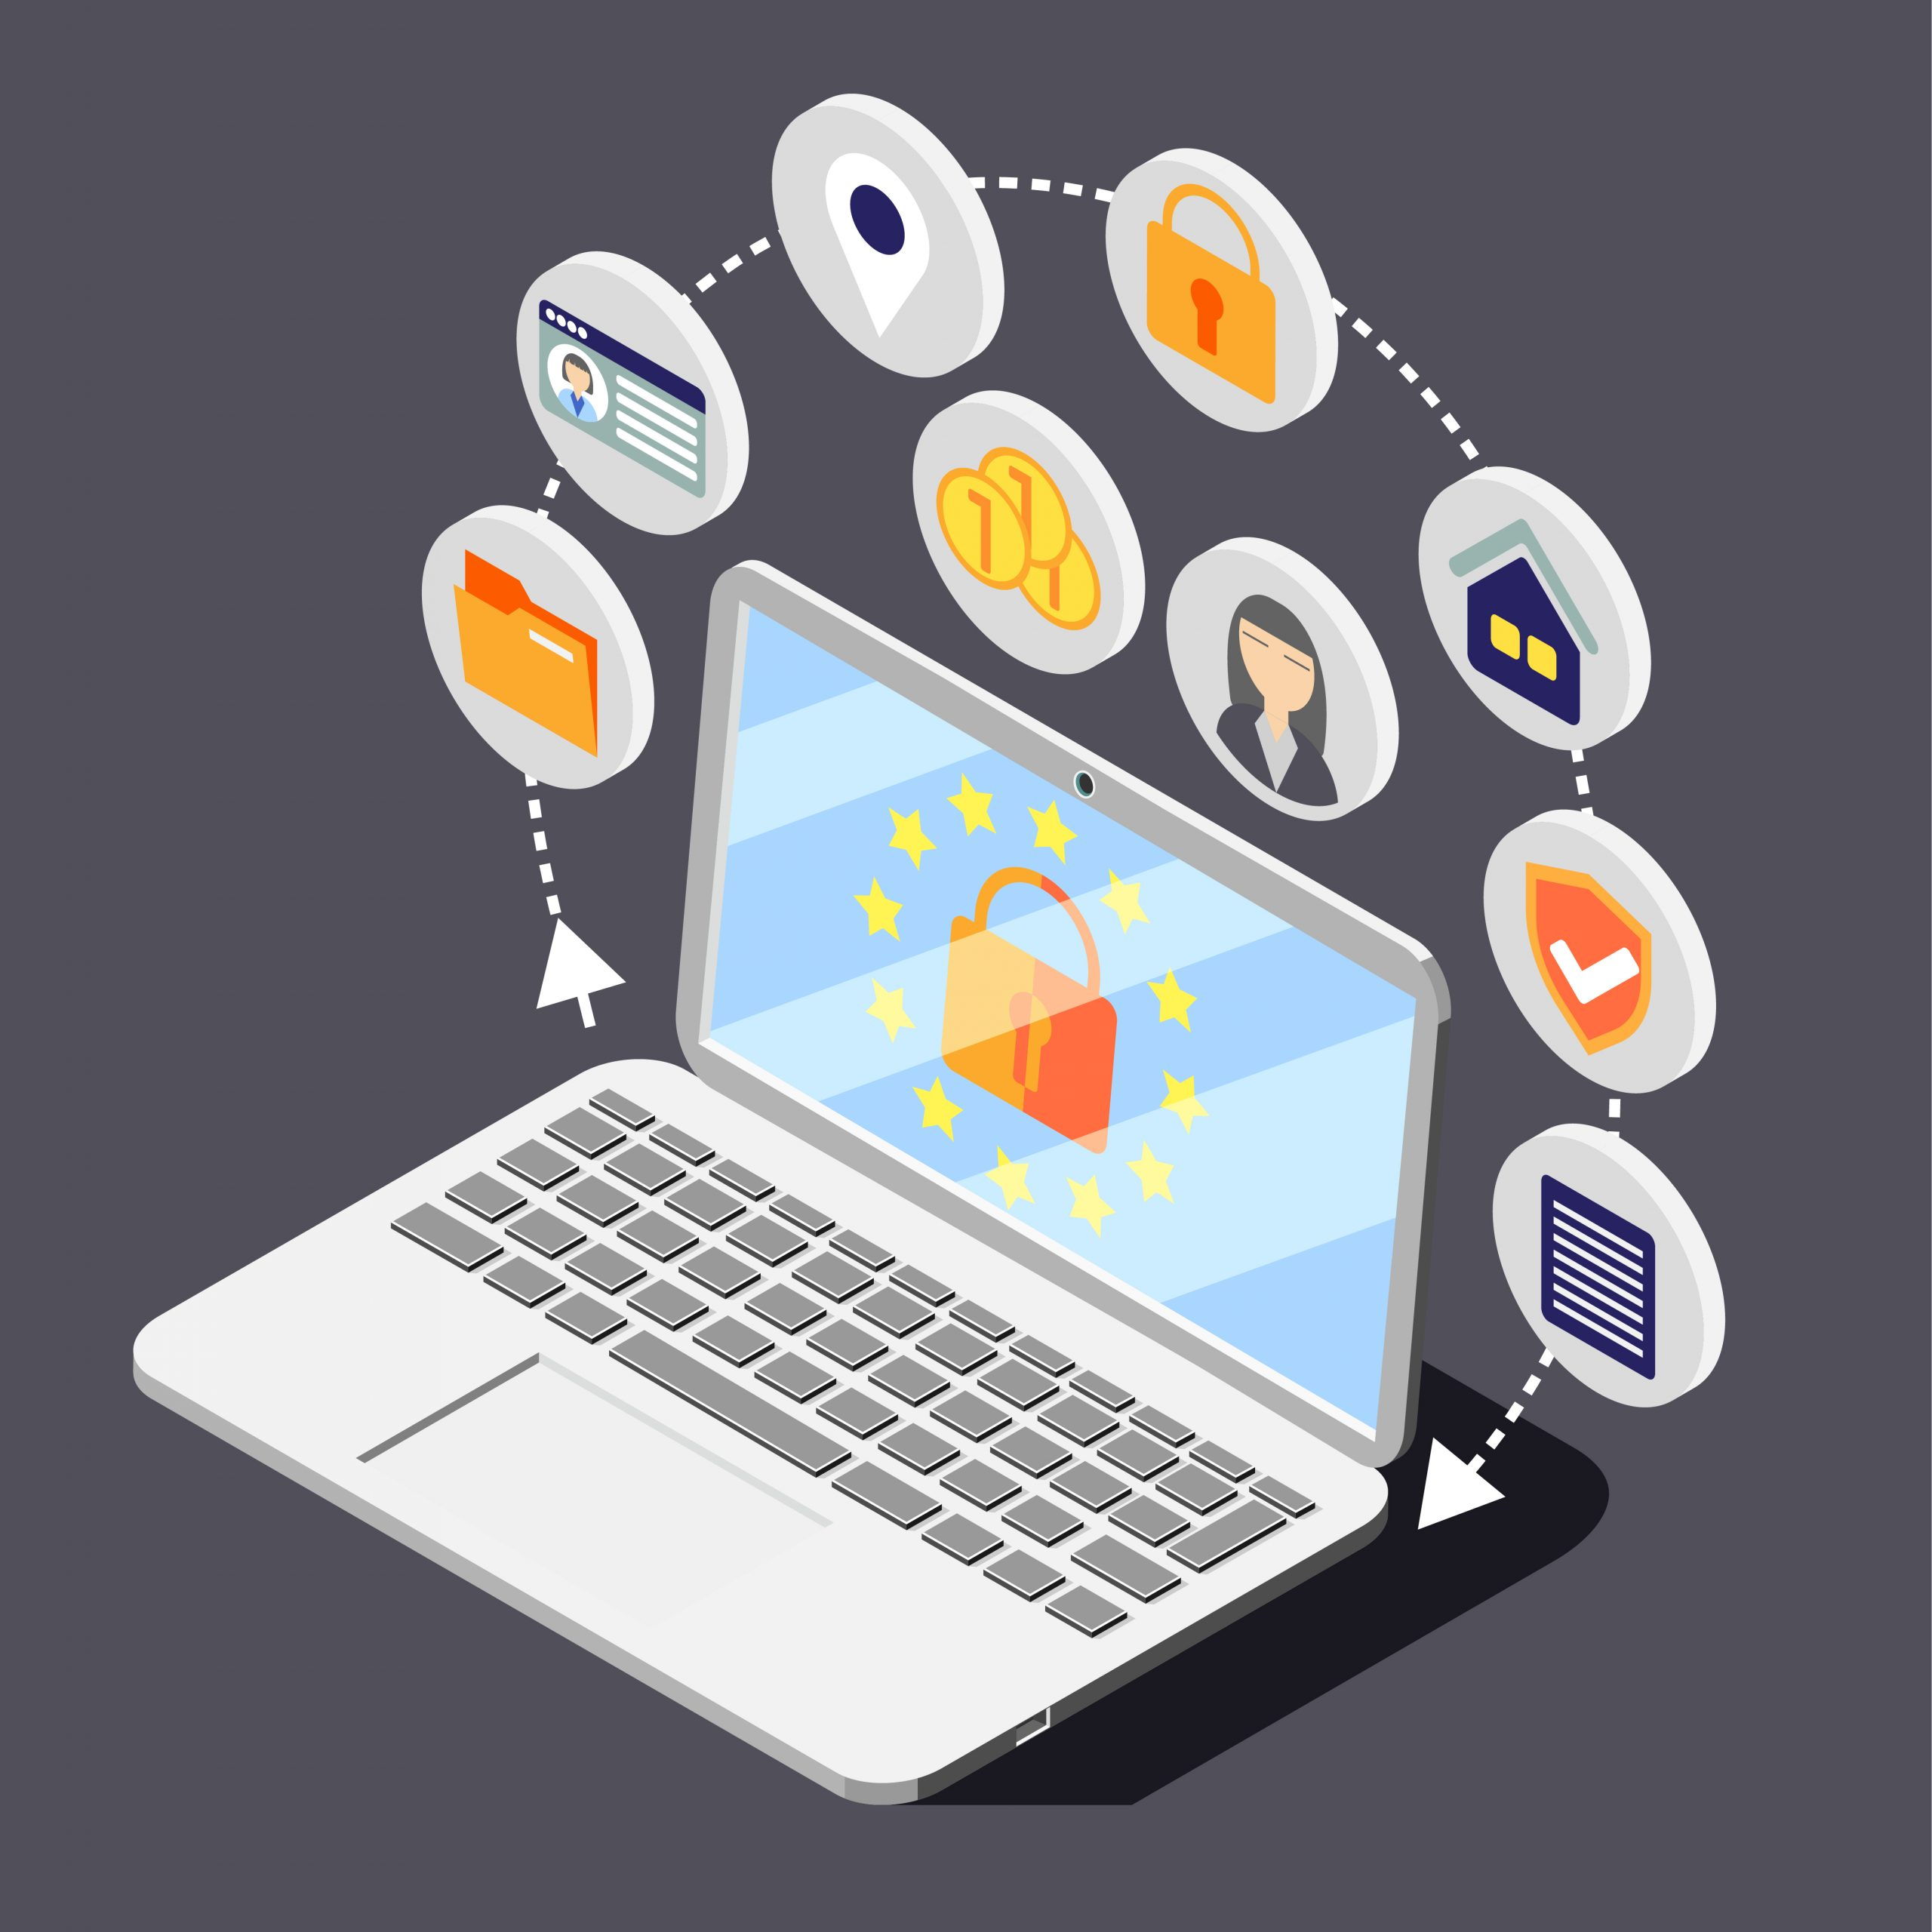 Personal data protection gdpr isometric background composition with image of laptop surrounded by circle pictogram icons vector illustration